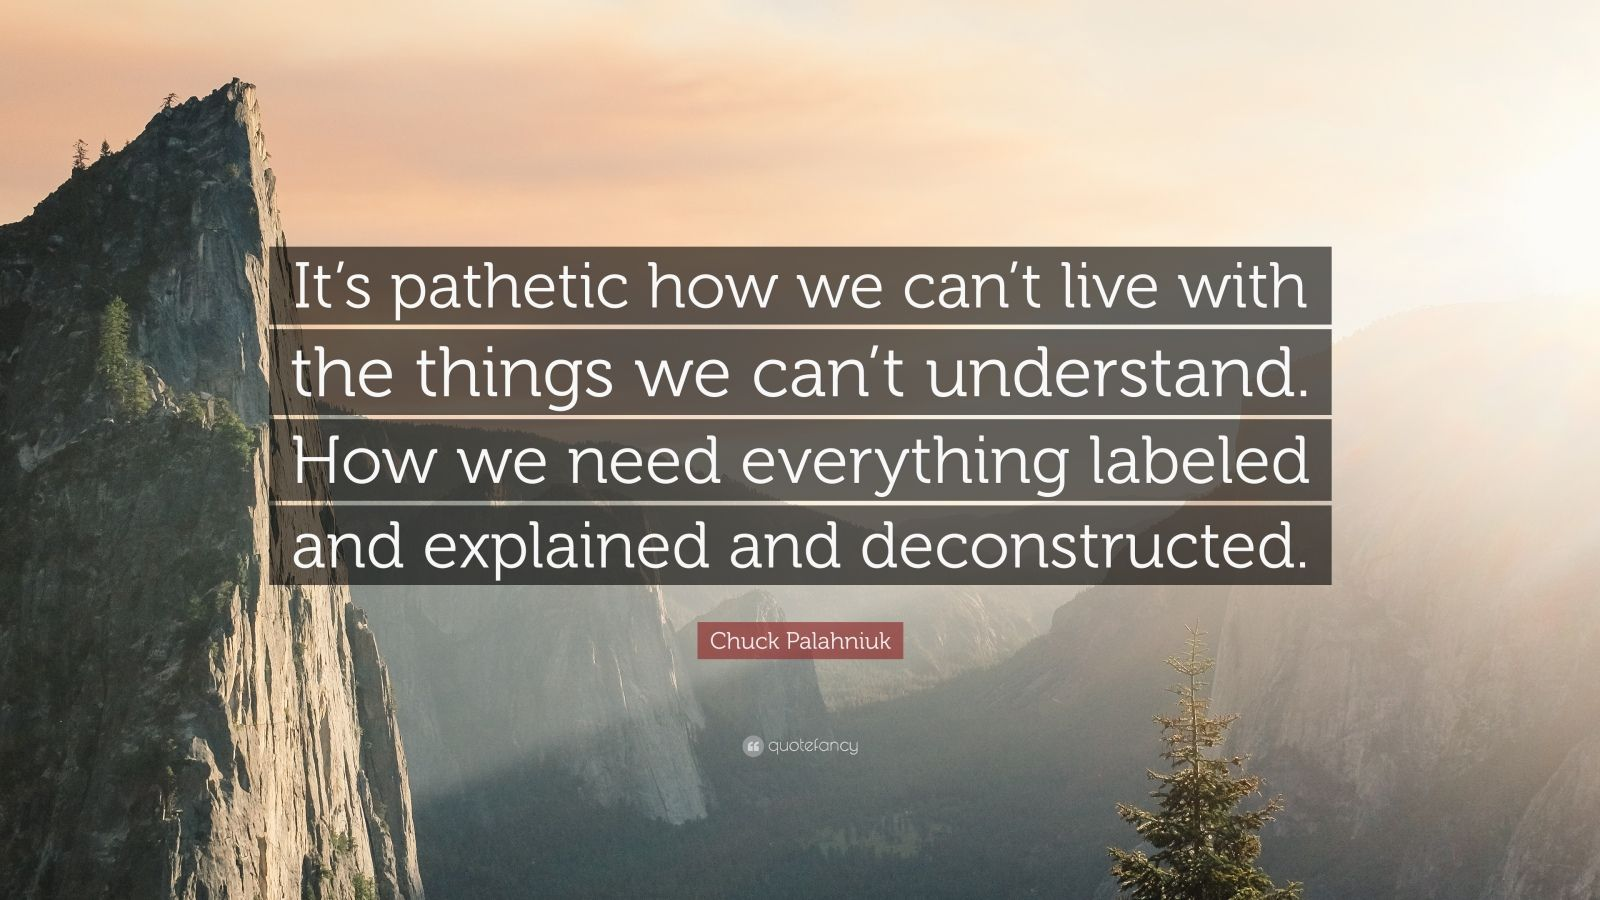 """Chuck Palahniuk Quote: """"It's pathetic how we can't live with the things we can't understand. How we need everything labeled and explained and deconstructed."""""""